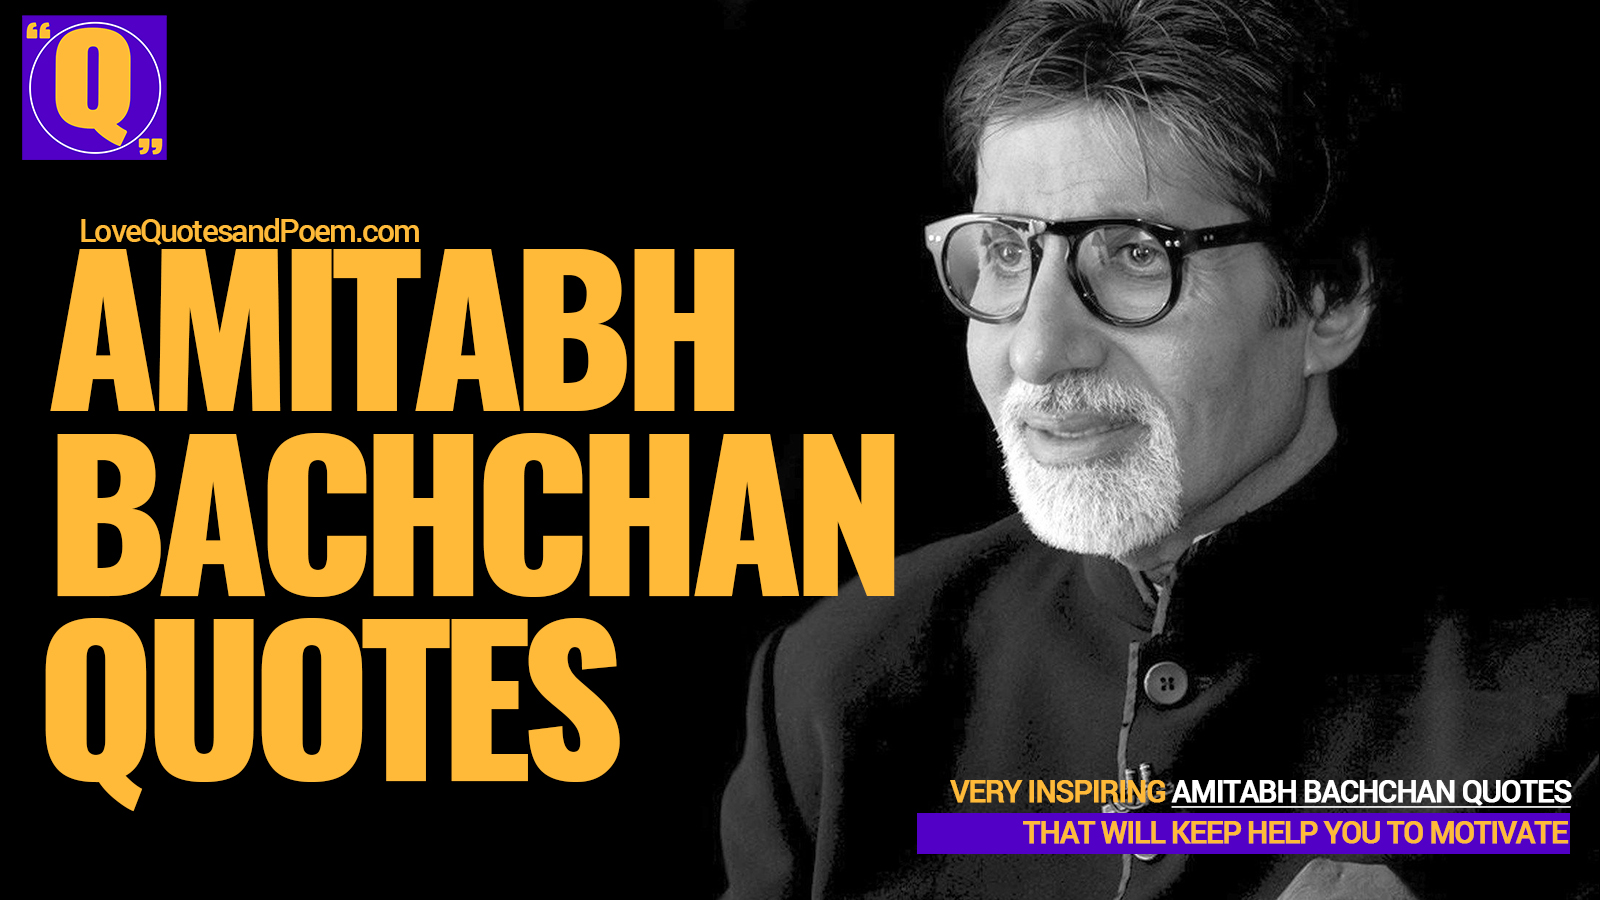 Amitabh-Bachchan-Quotes